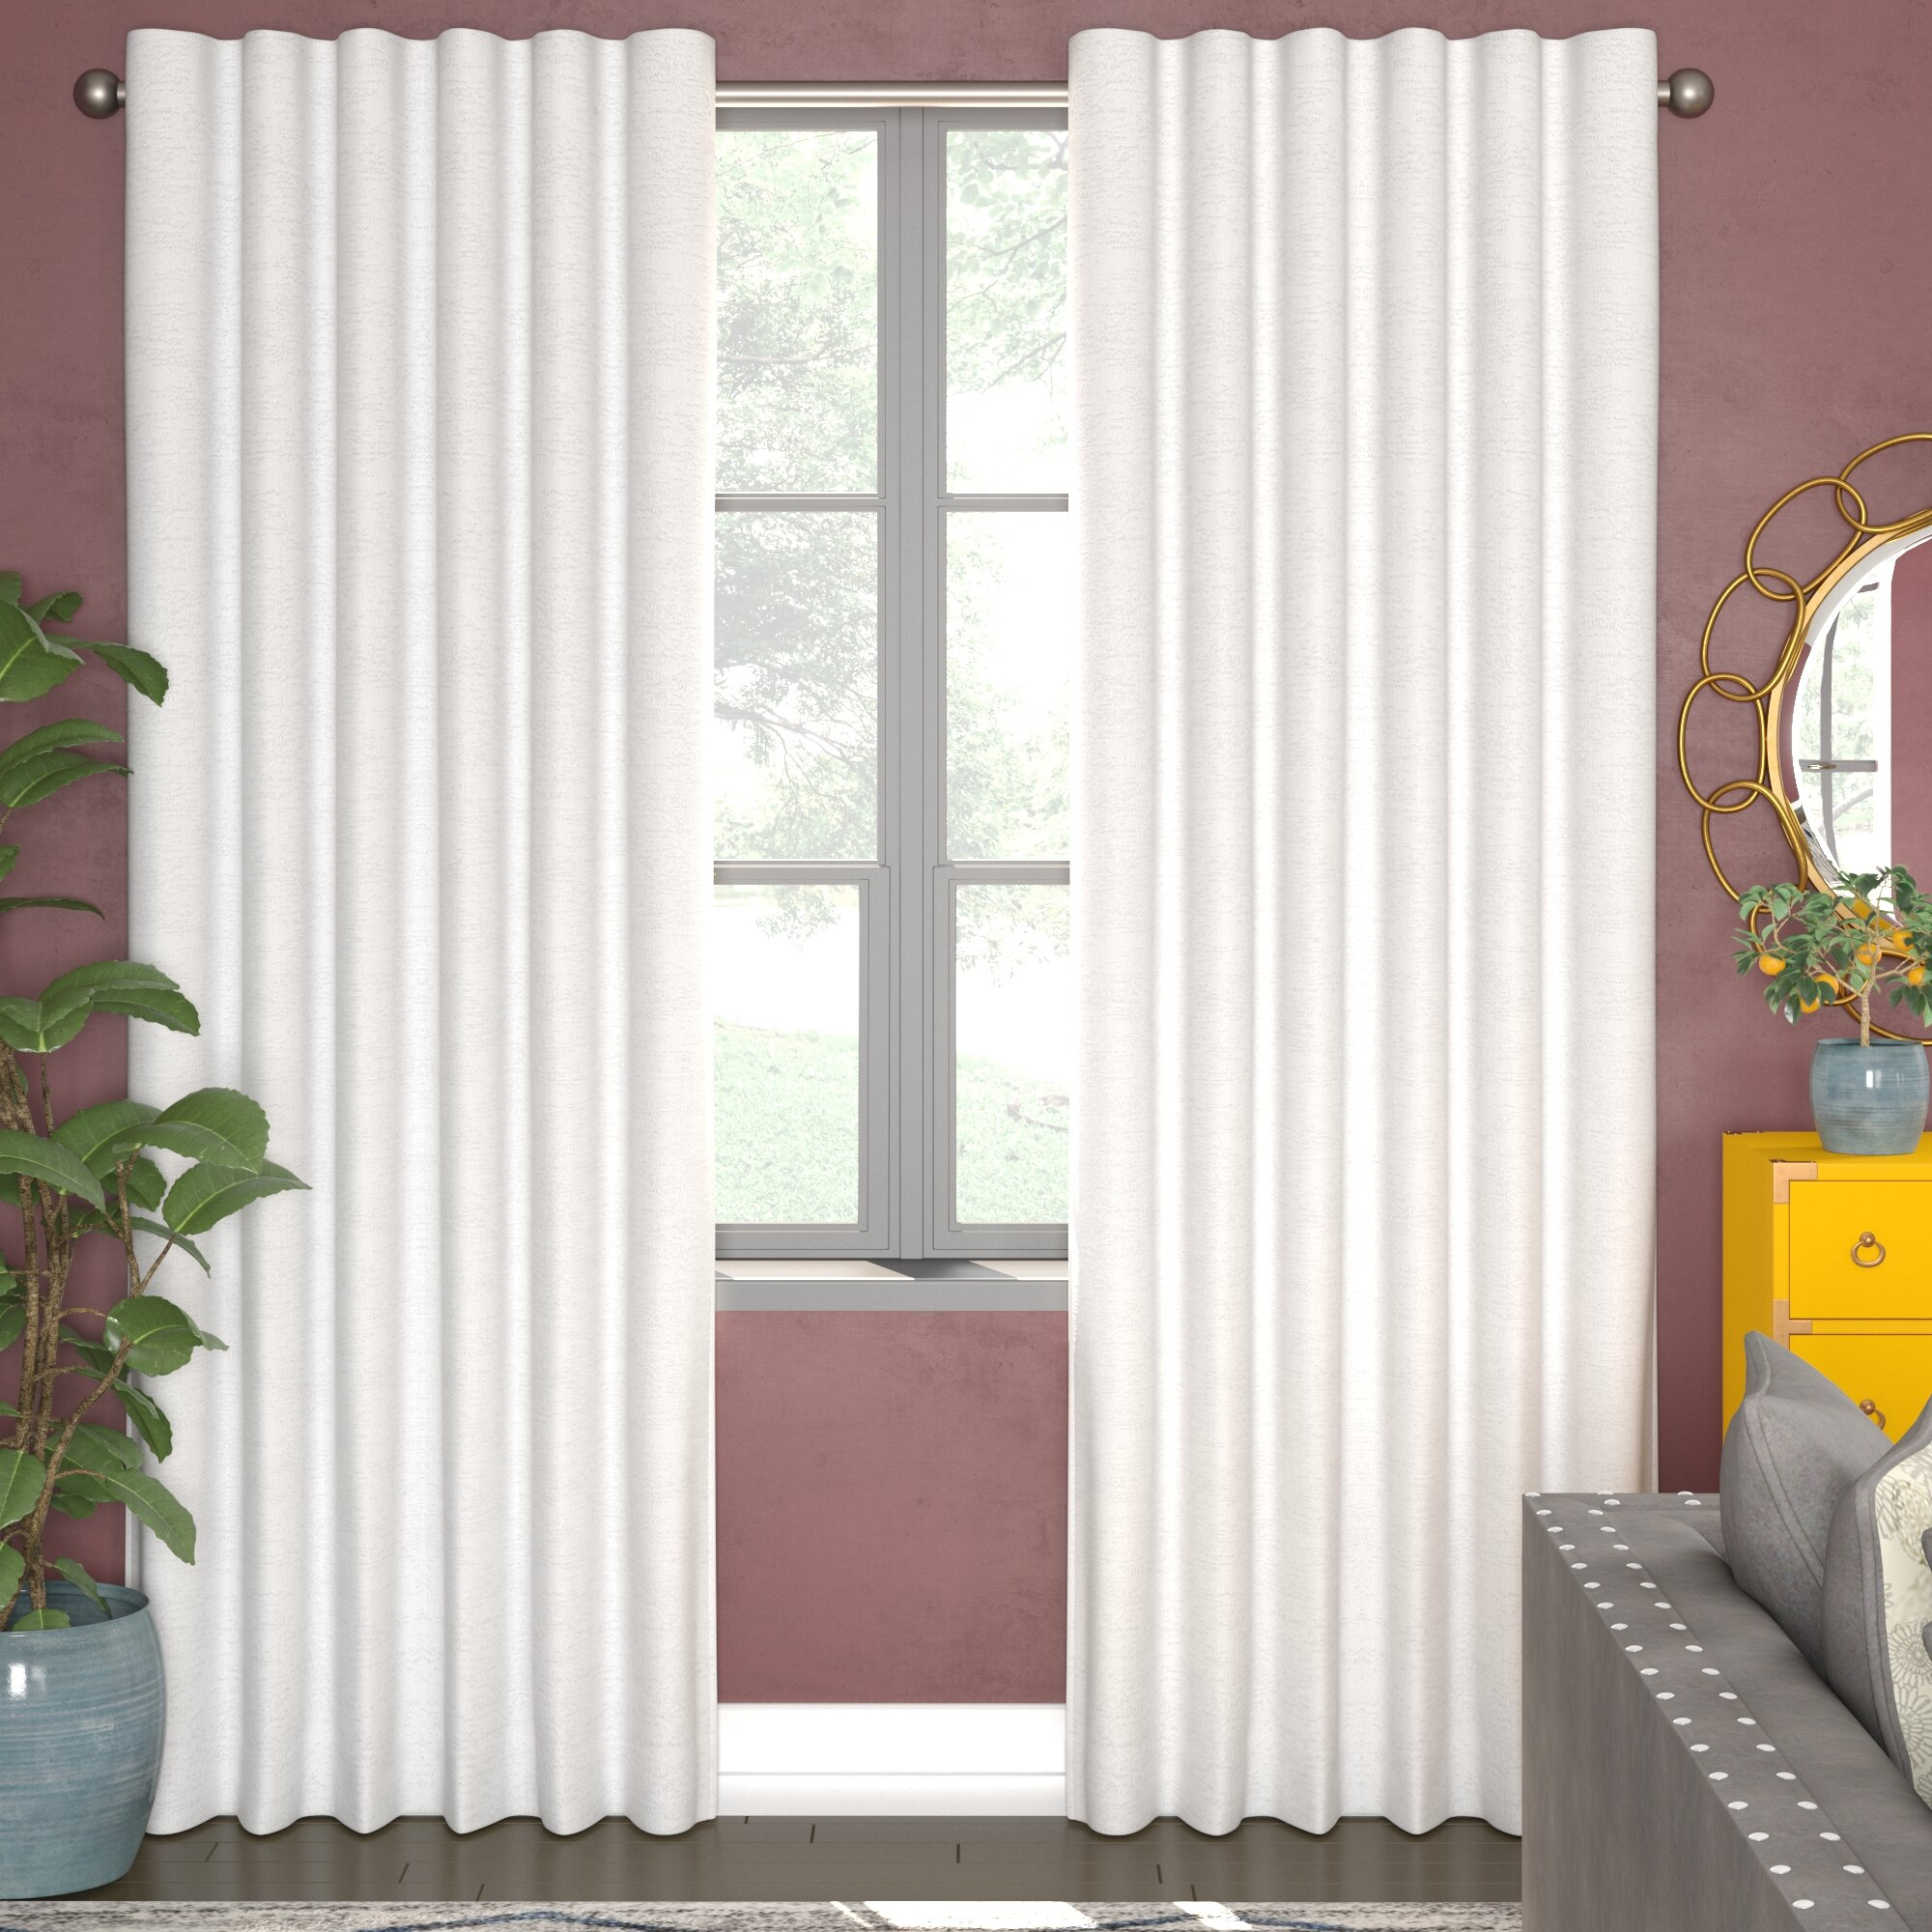 Bannerman Solid Thermal Rod Pocket Curtain Panels Throughout Rod Pocket Curtain Panels (View 16 of 20)